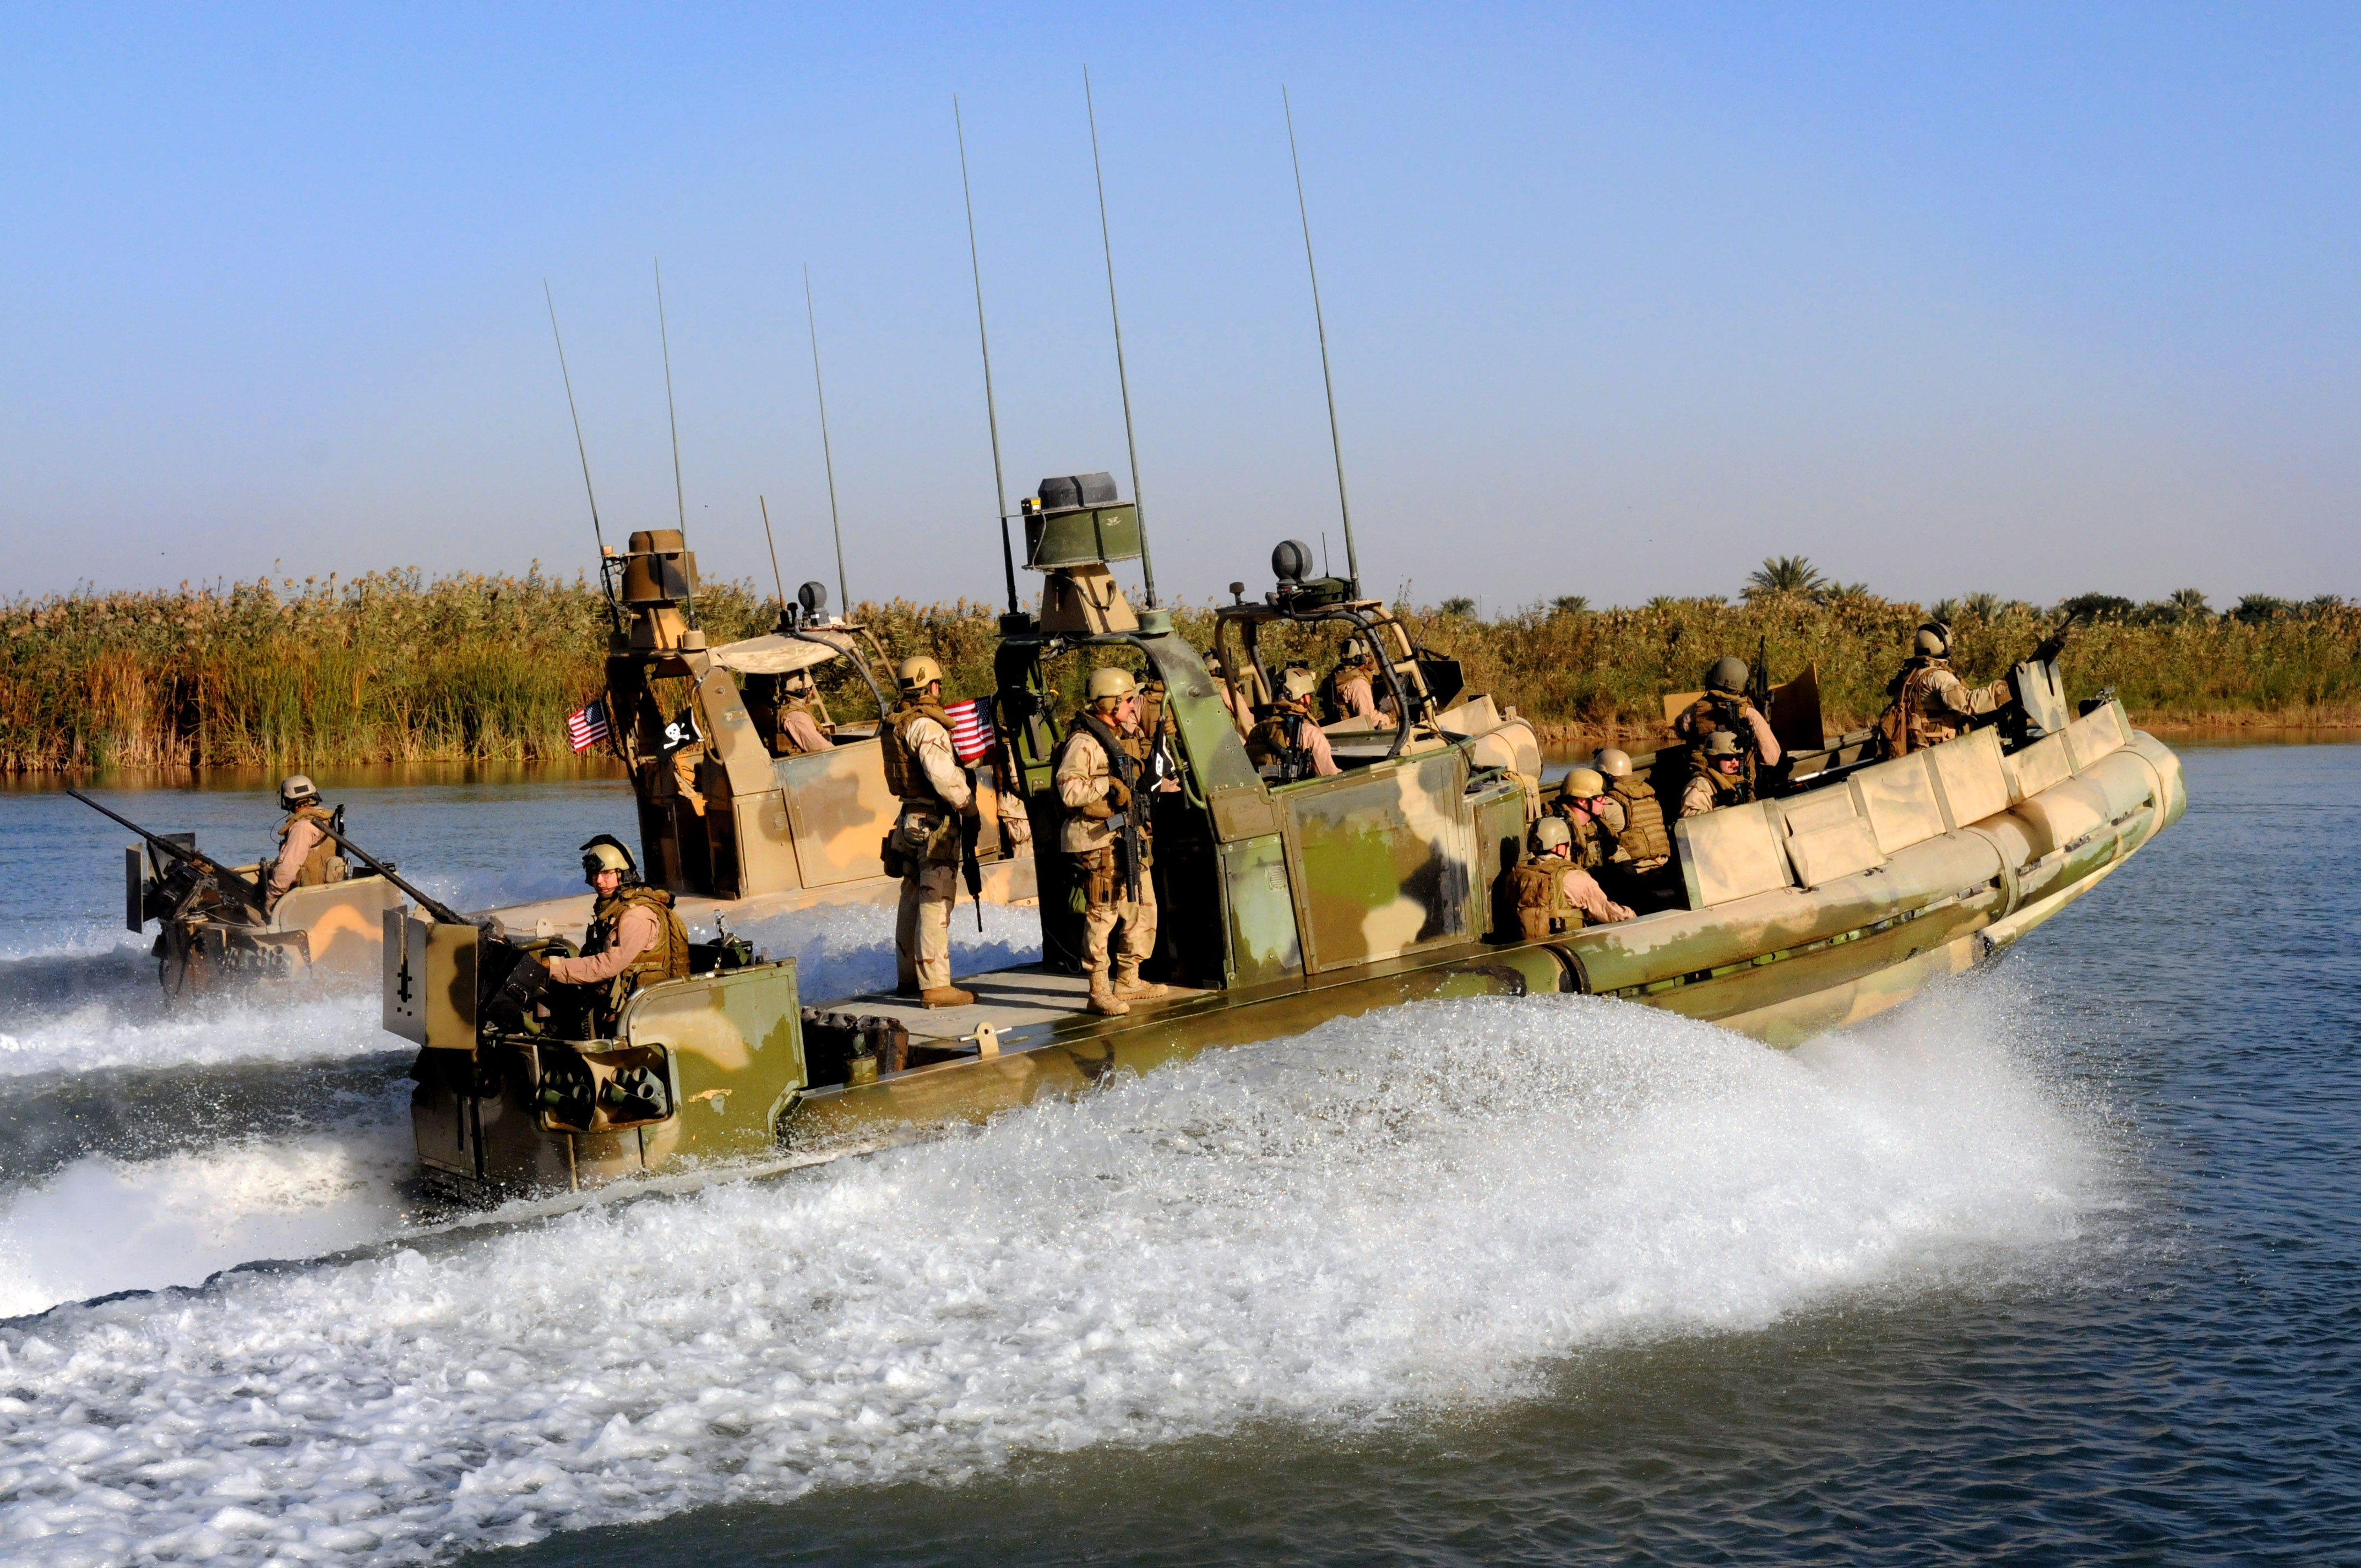 Navy River Patrol Boats http://commons.wikimedia.org/wiki/File:US_Navy_081127-N-5549O-110_Sailors_assigned_to_Riverine_Squadron_1_race_along_the_Euphrates_River_in_riverine_patrol_boats.jpg